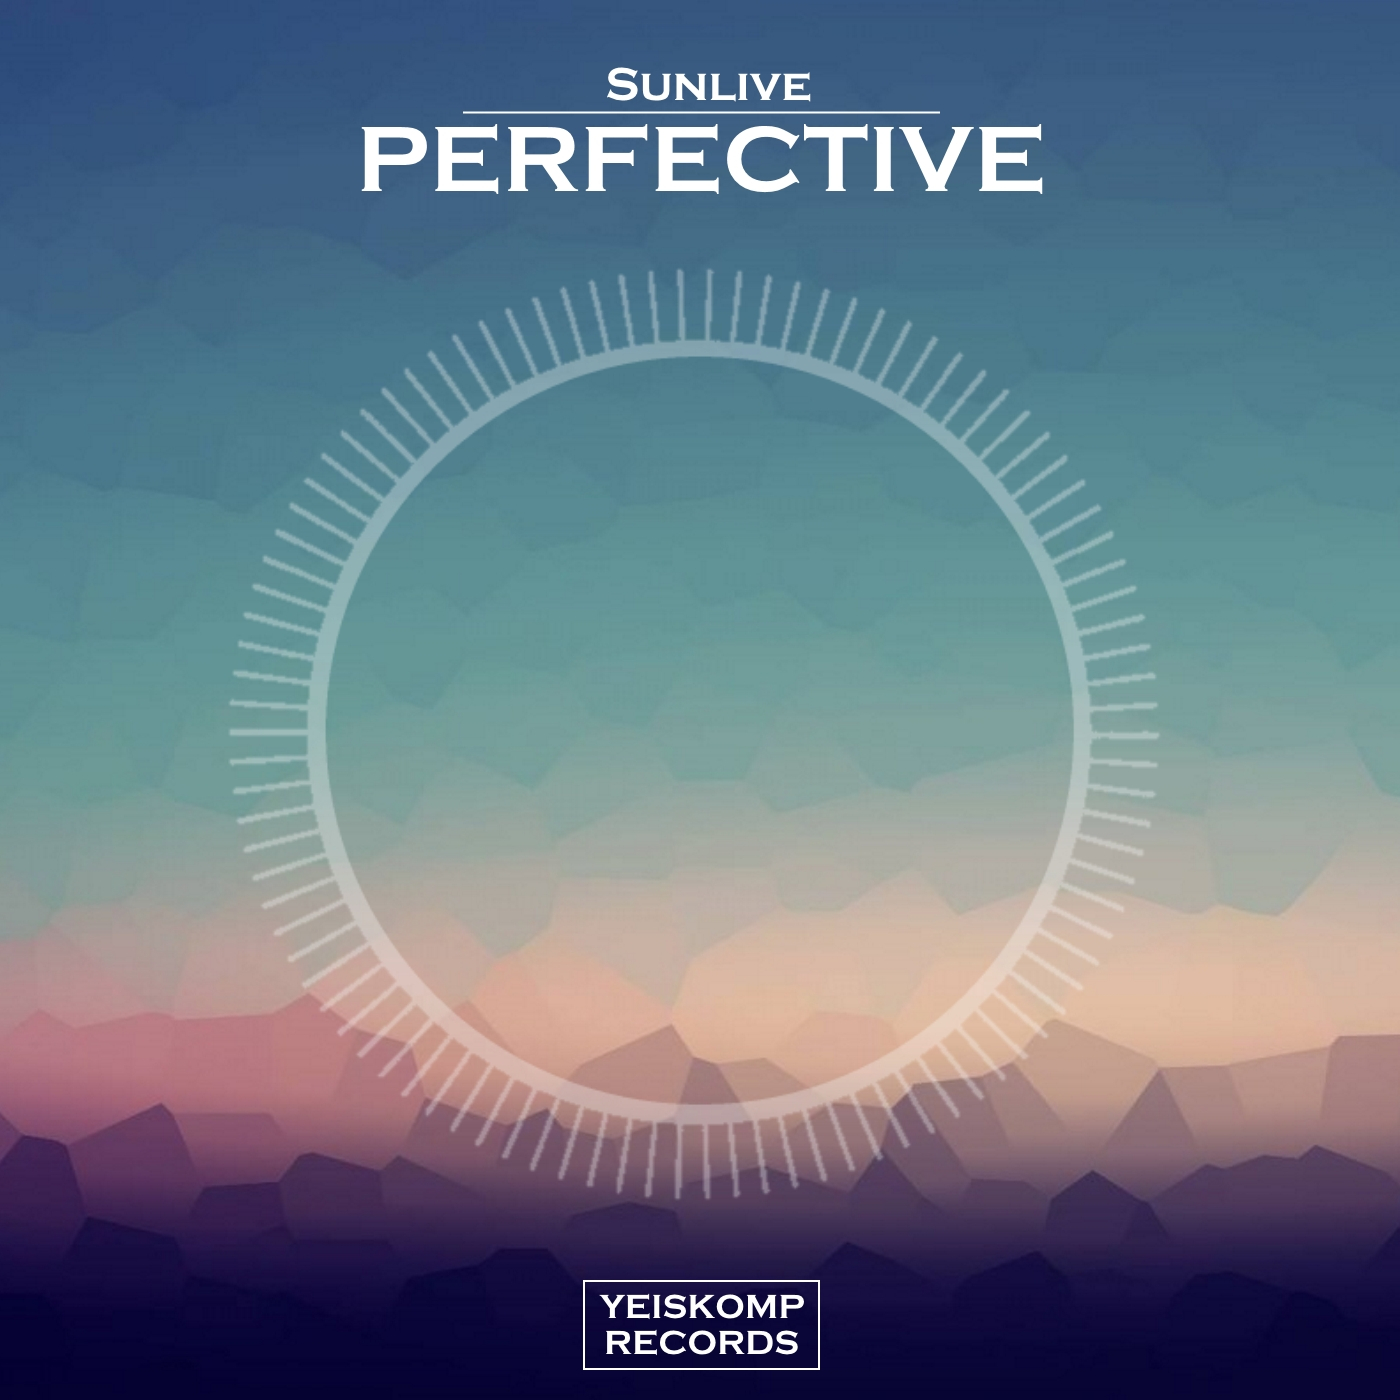 Sunlive - Perfective (Original Mix)